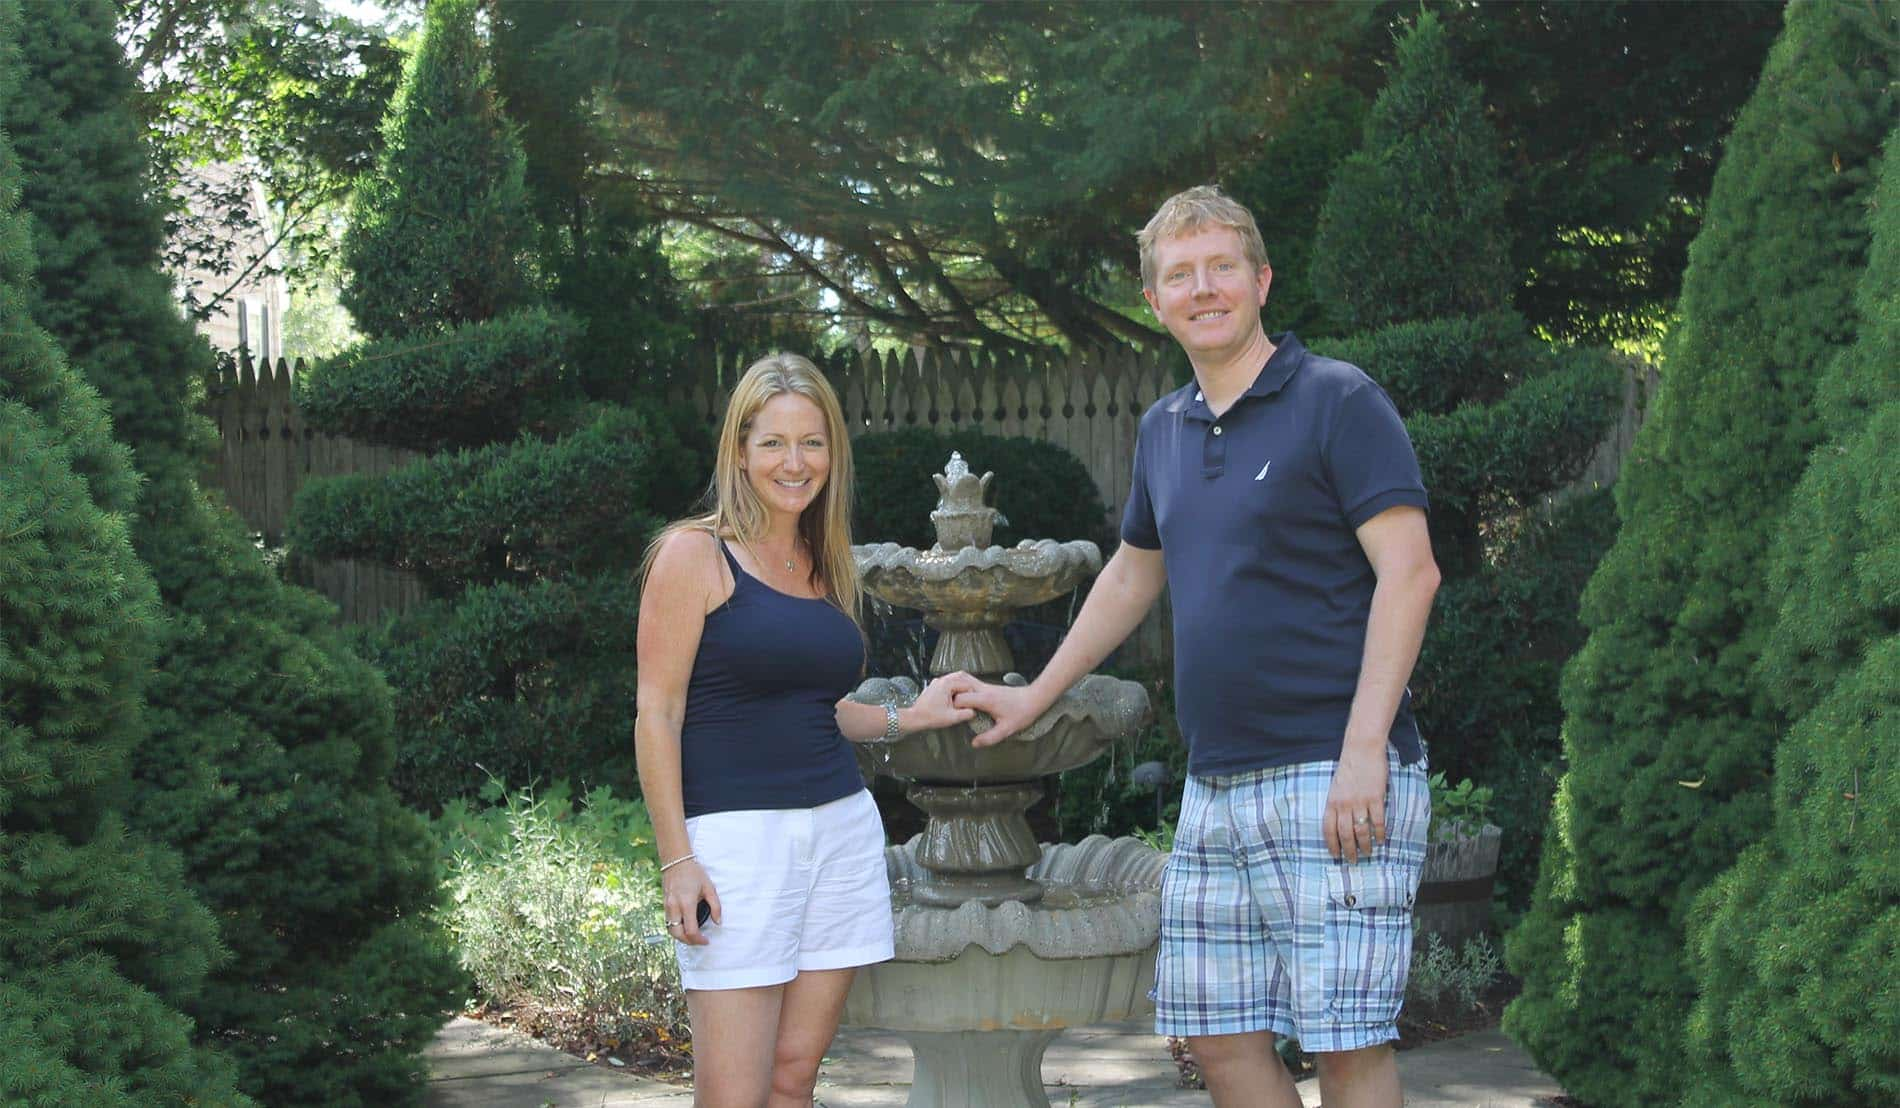 Man and woman holding hands standing in front of a three-tiered water fountain surrounded by manicured shrubs